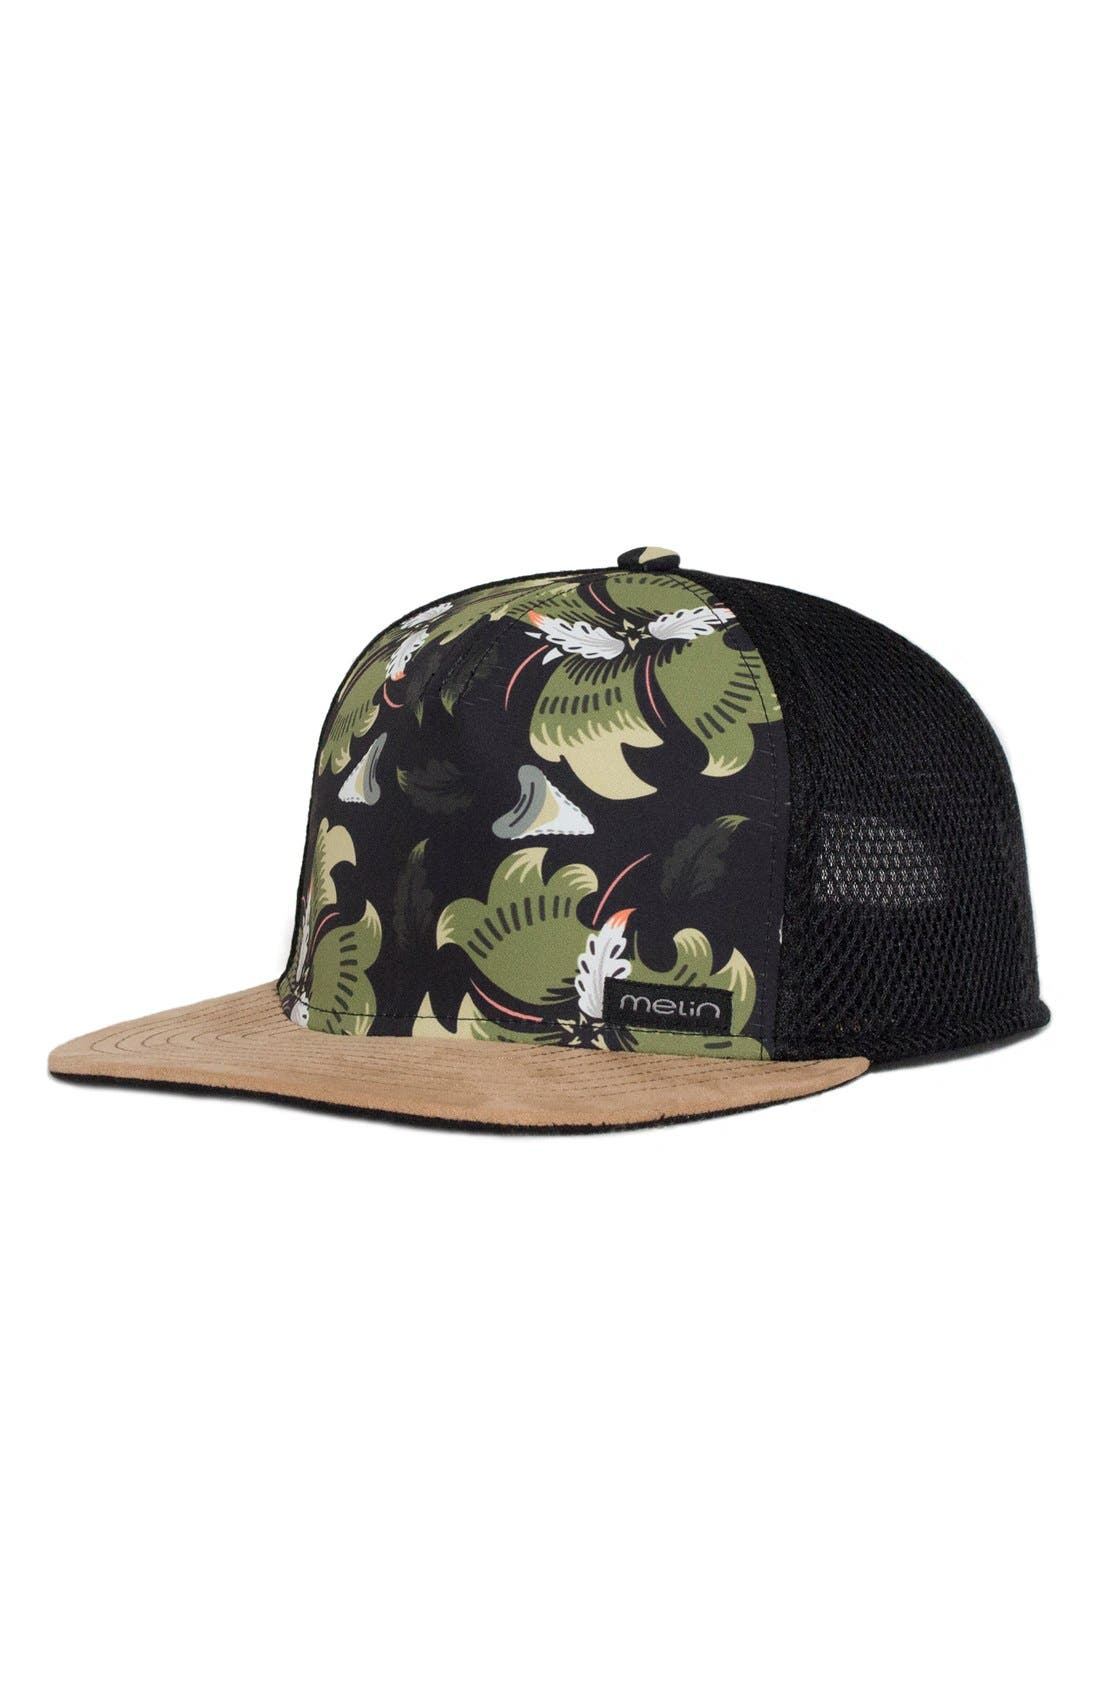 Alternate Image 1 Selected - Melin 'The Pacific' Snapback Hat